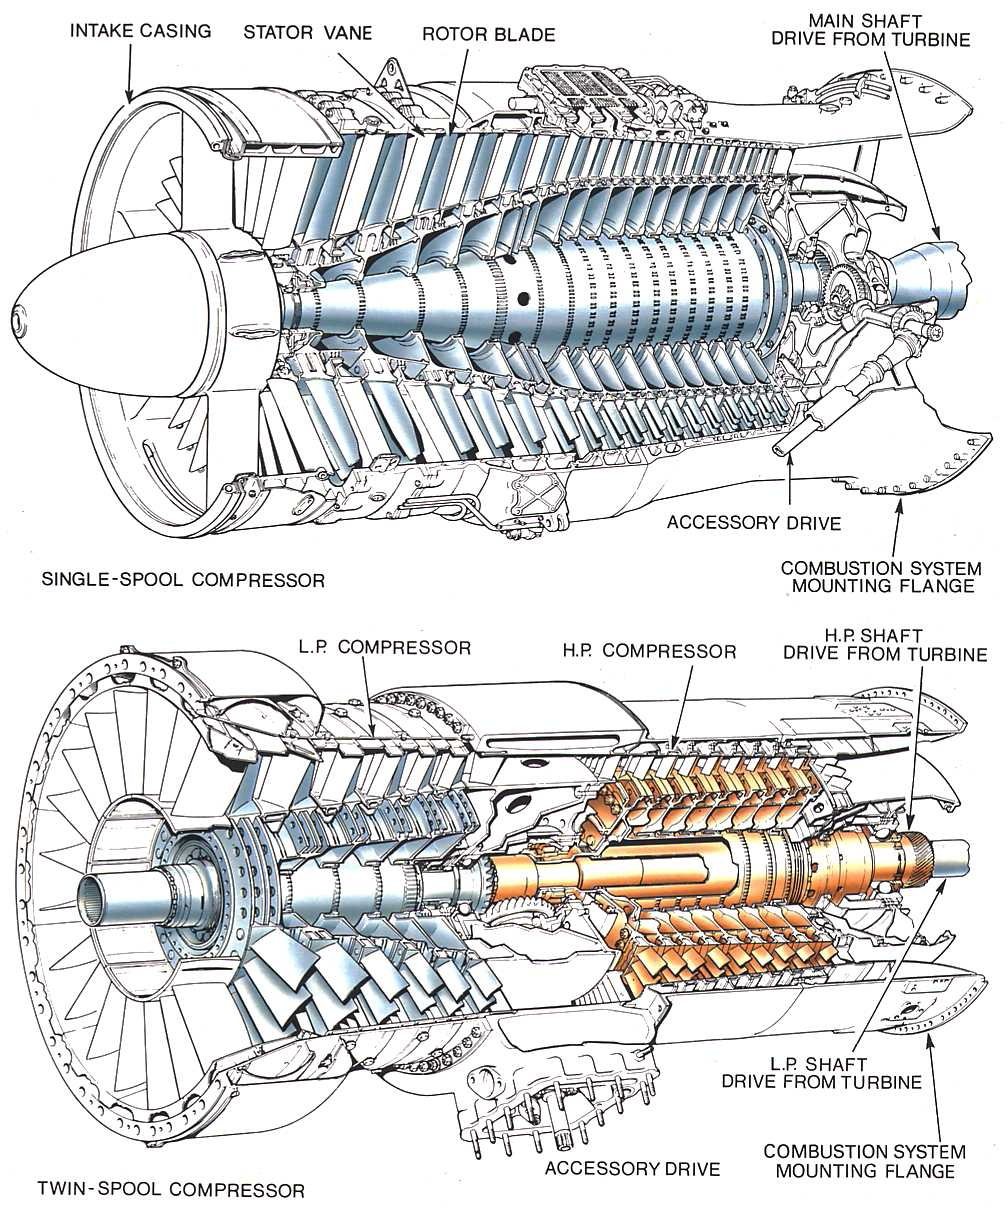 model aircraft the axial flow compressor intake turboshaft helicopter engine diagram turbine engine stator vanes [ 1008 x 1208 Pixel ]